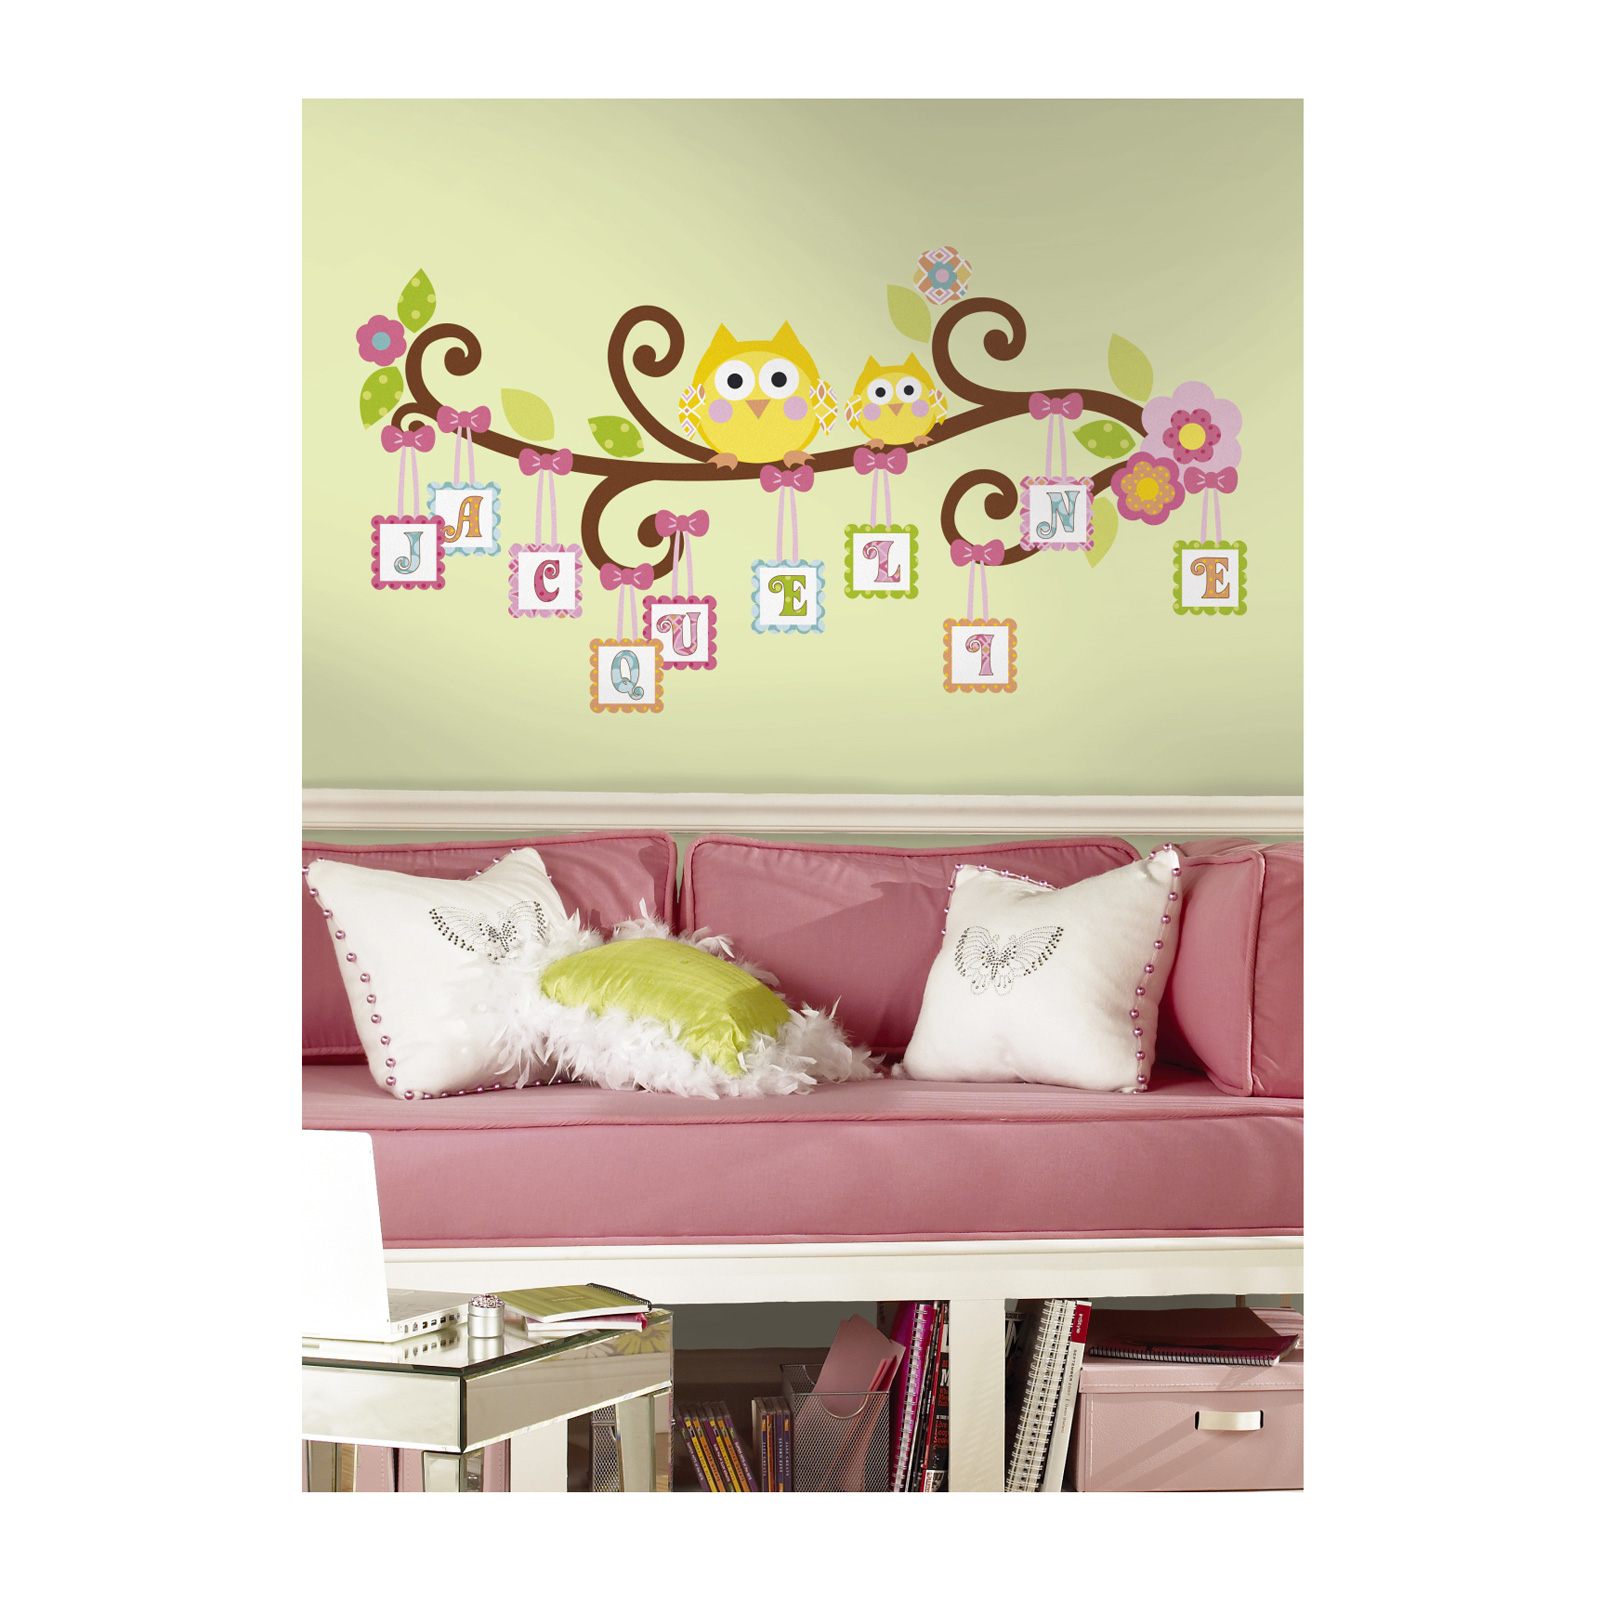 Happi Letter Branch Gt Wall by Stardom Specialty in USA